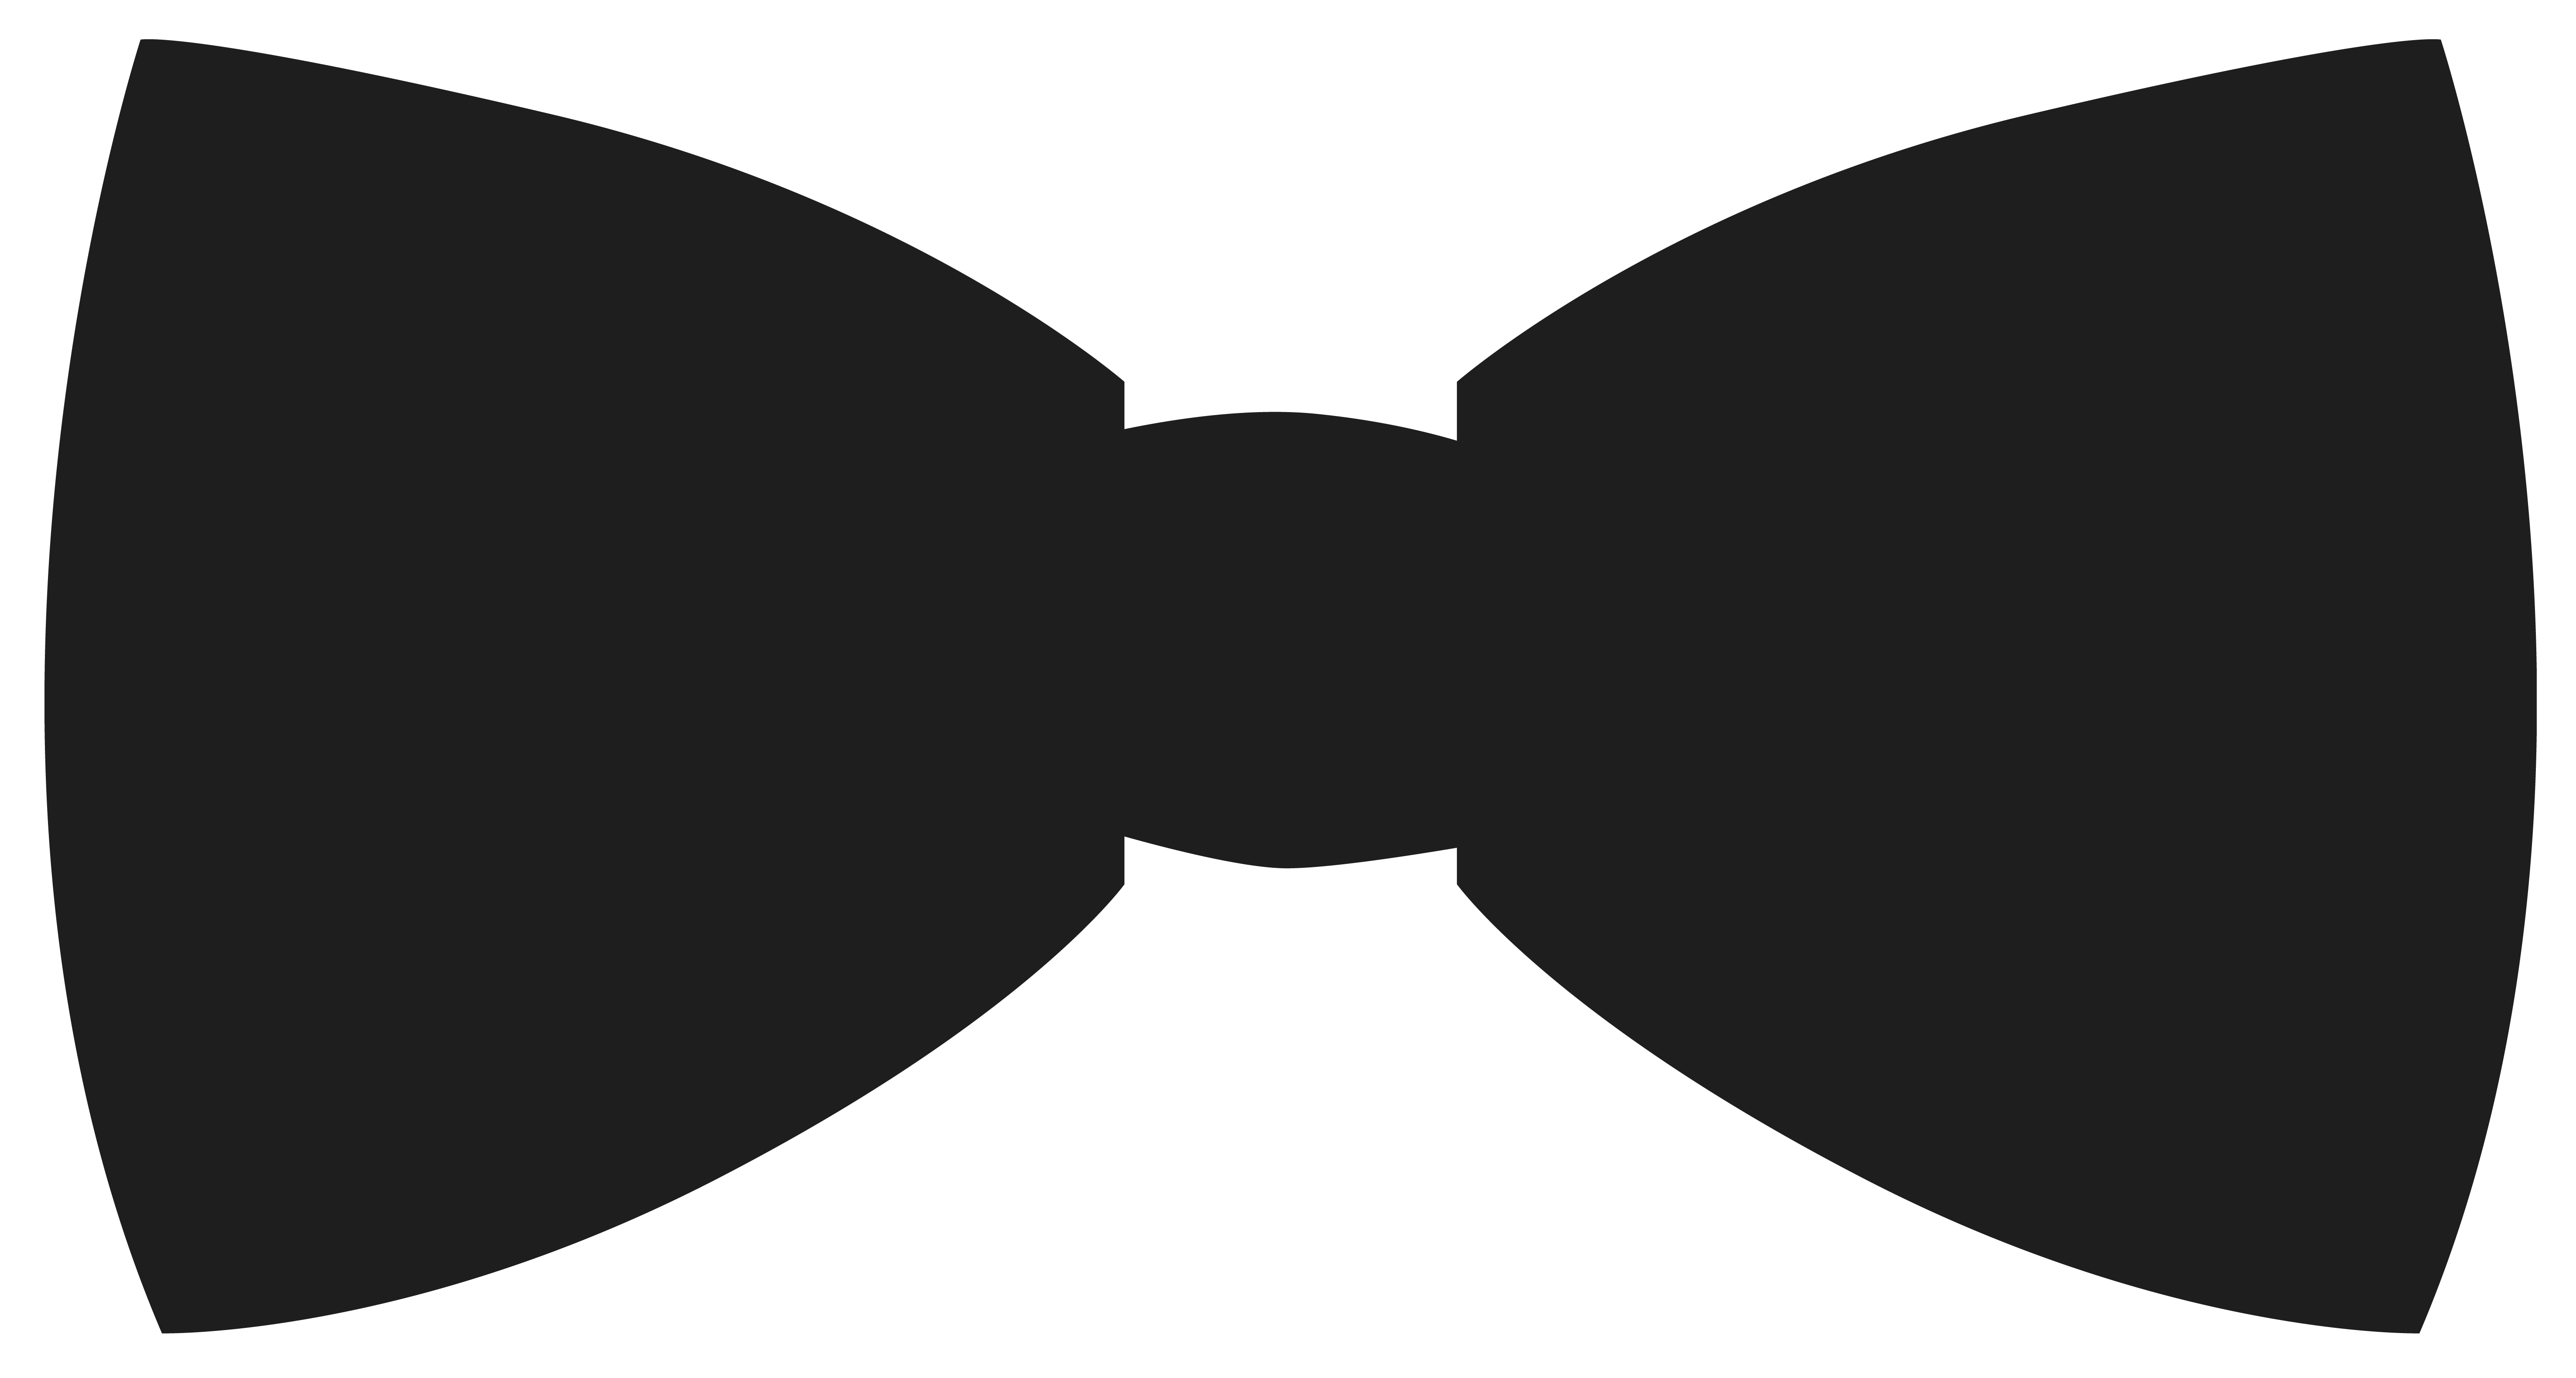 Bow tie silhouette png. Movember bowtie clipart image